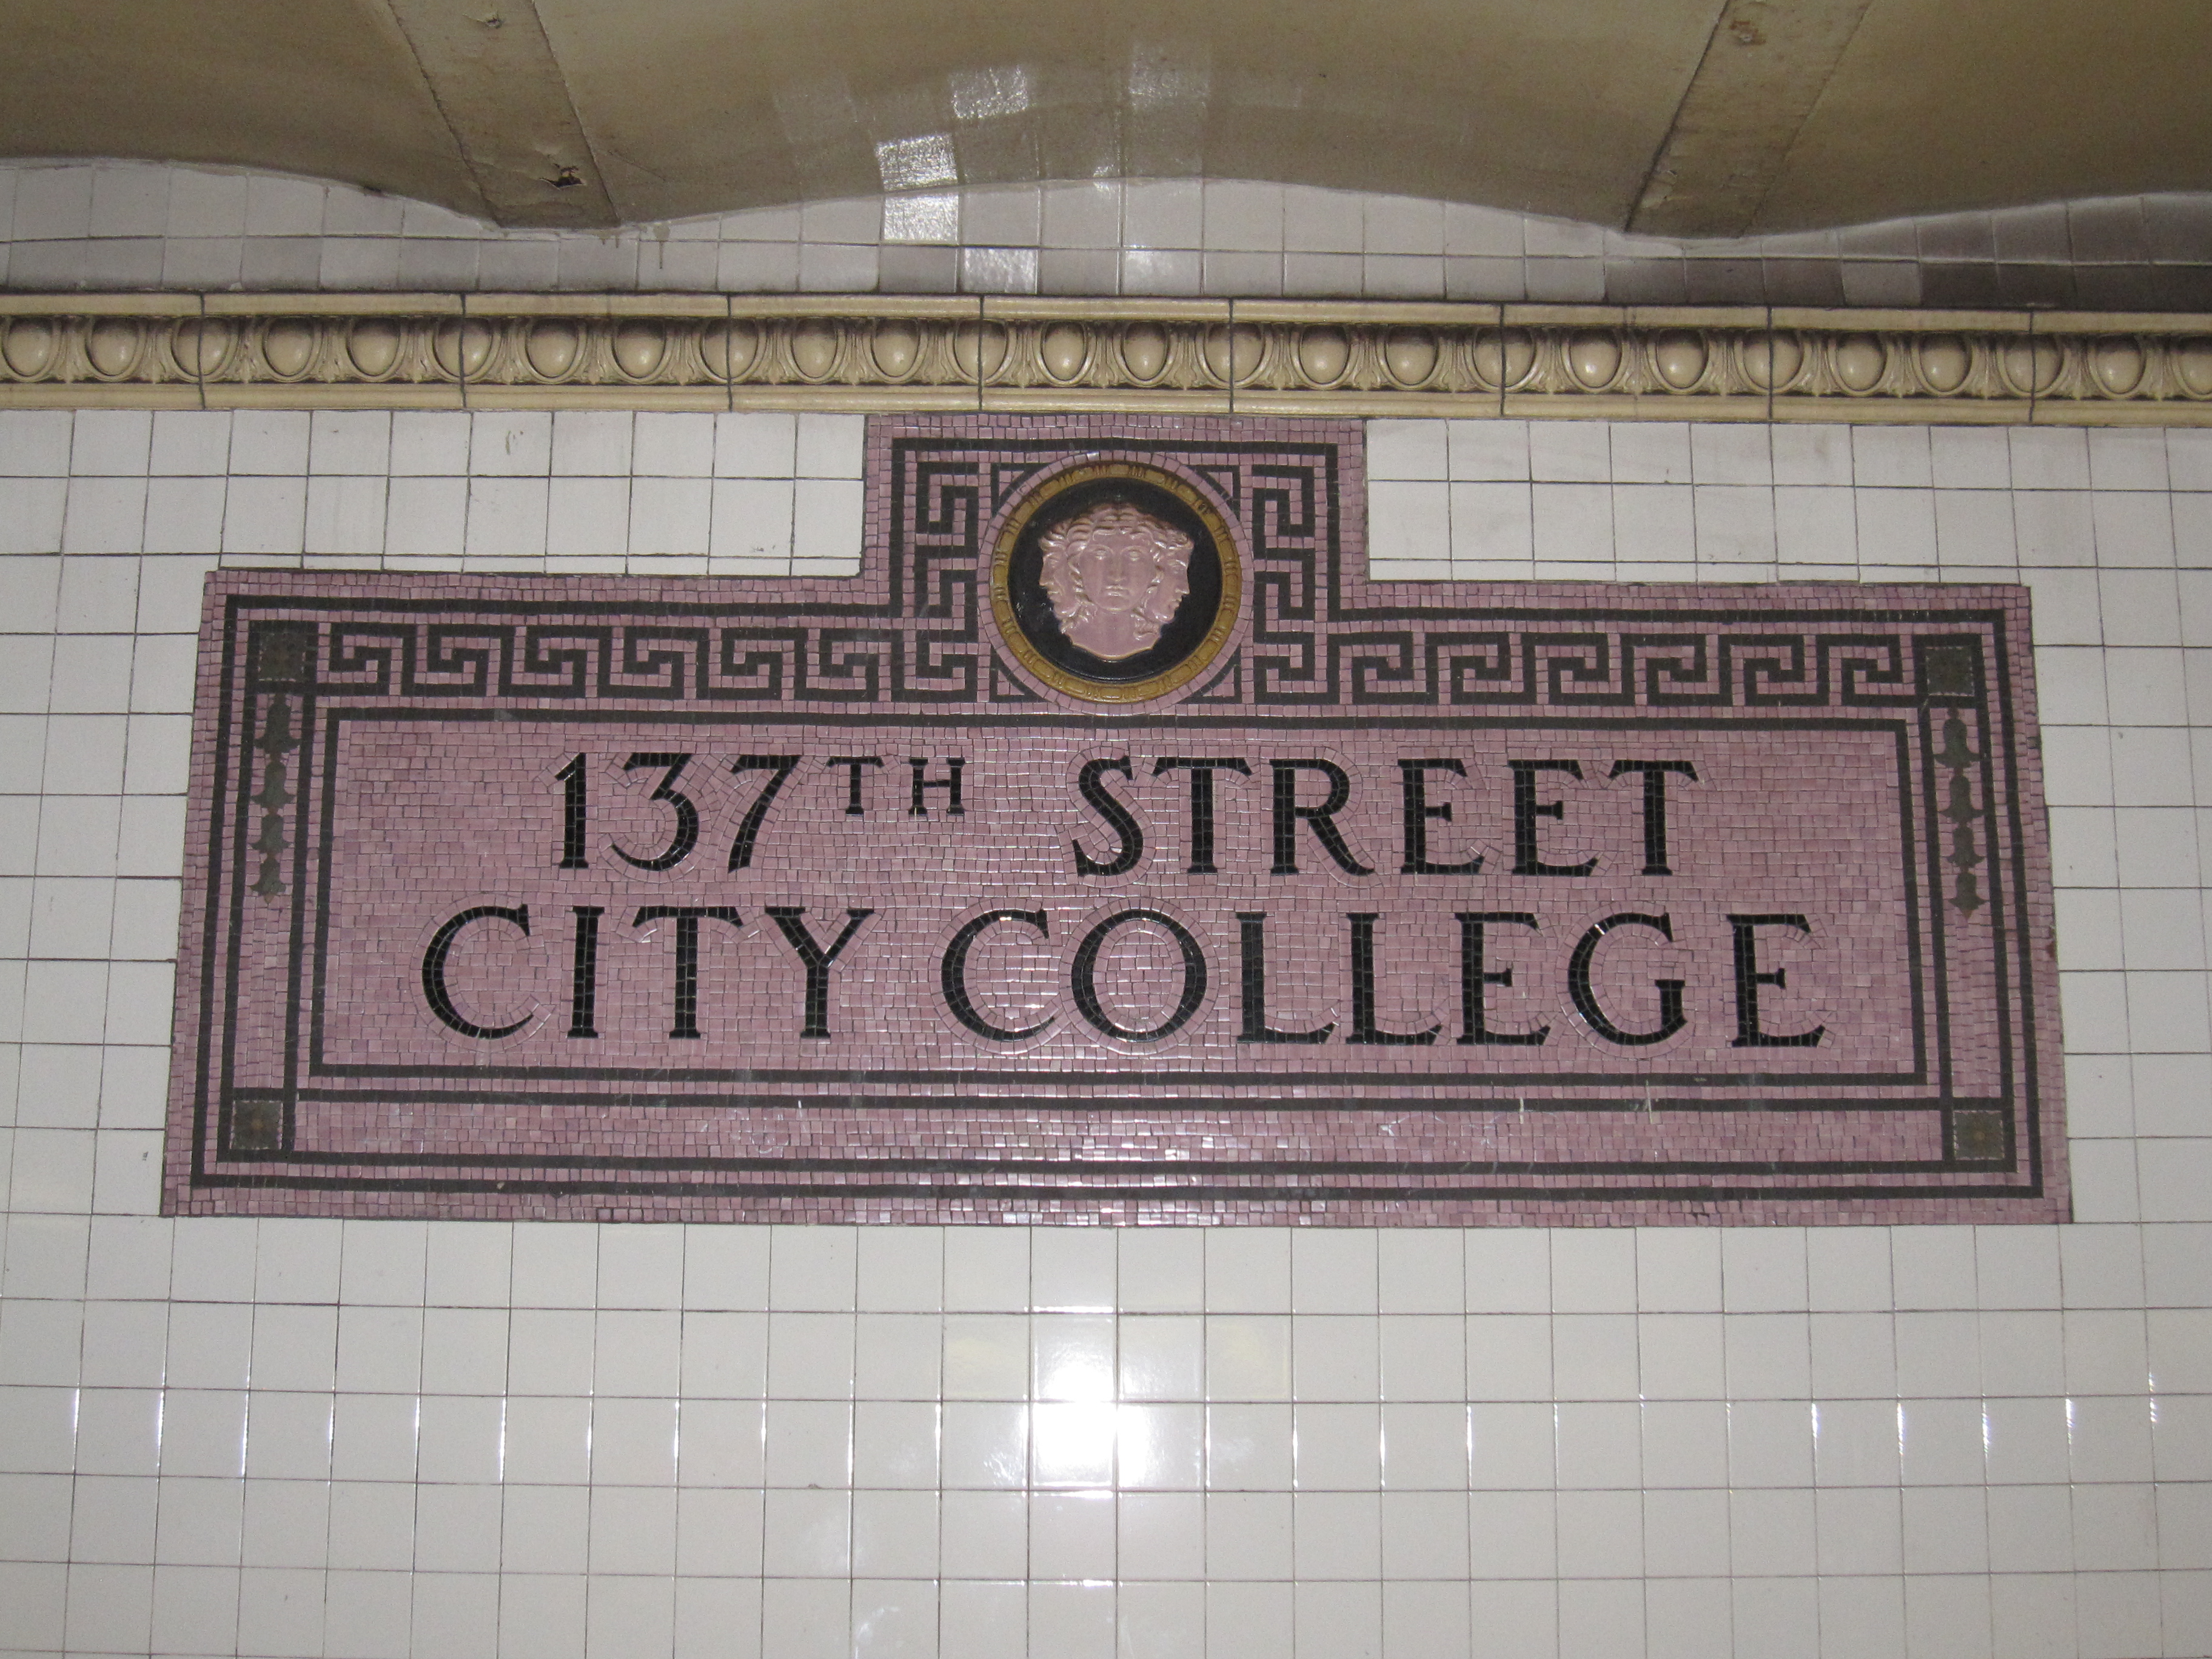 137th_Street–City_College_IRT_Broadway_1045